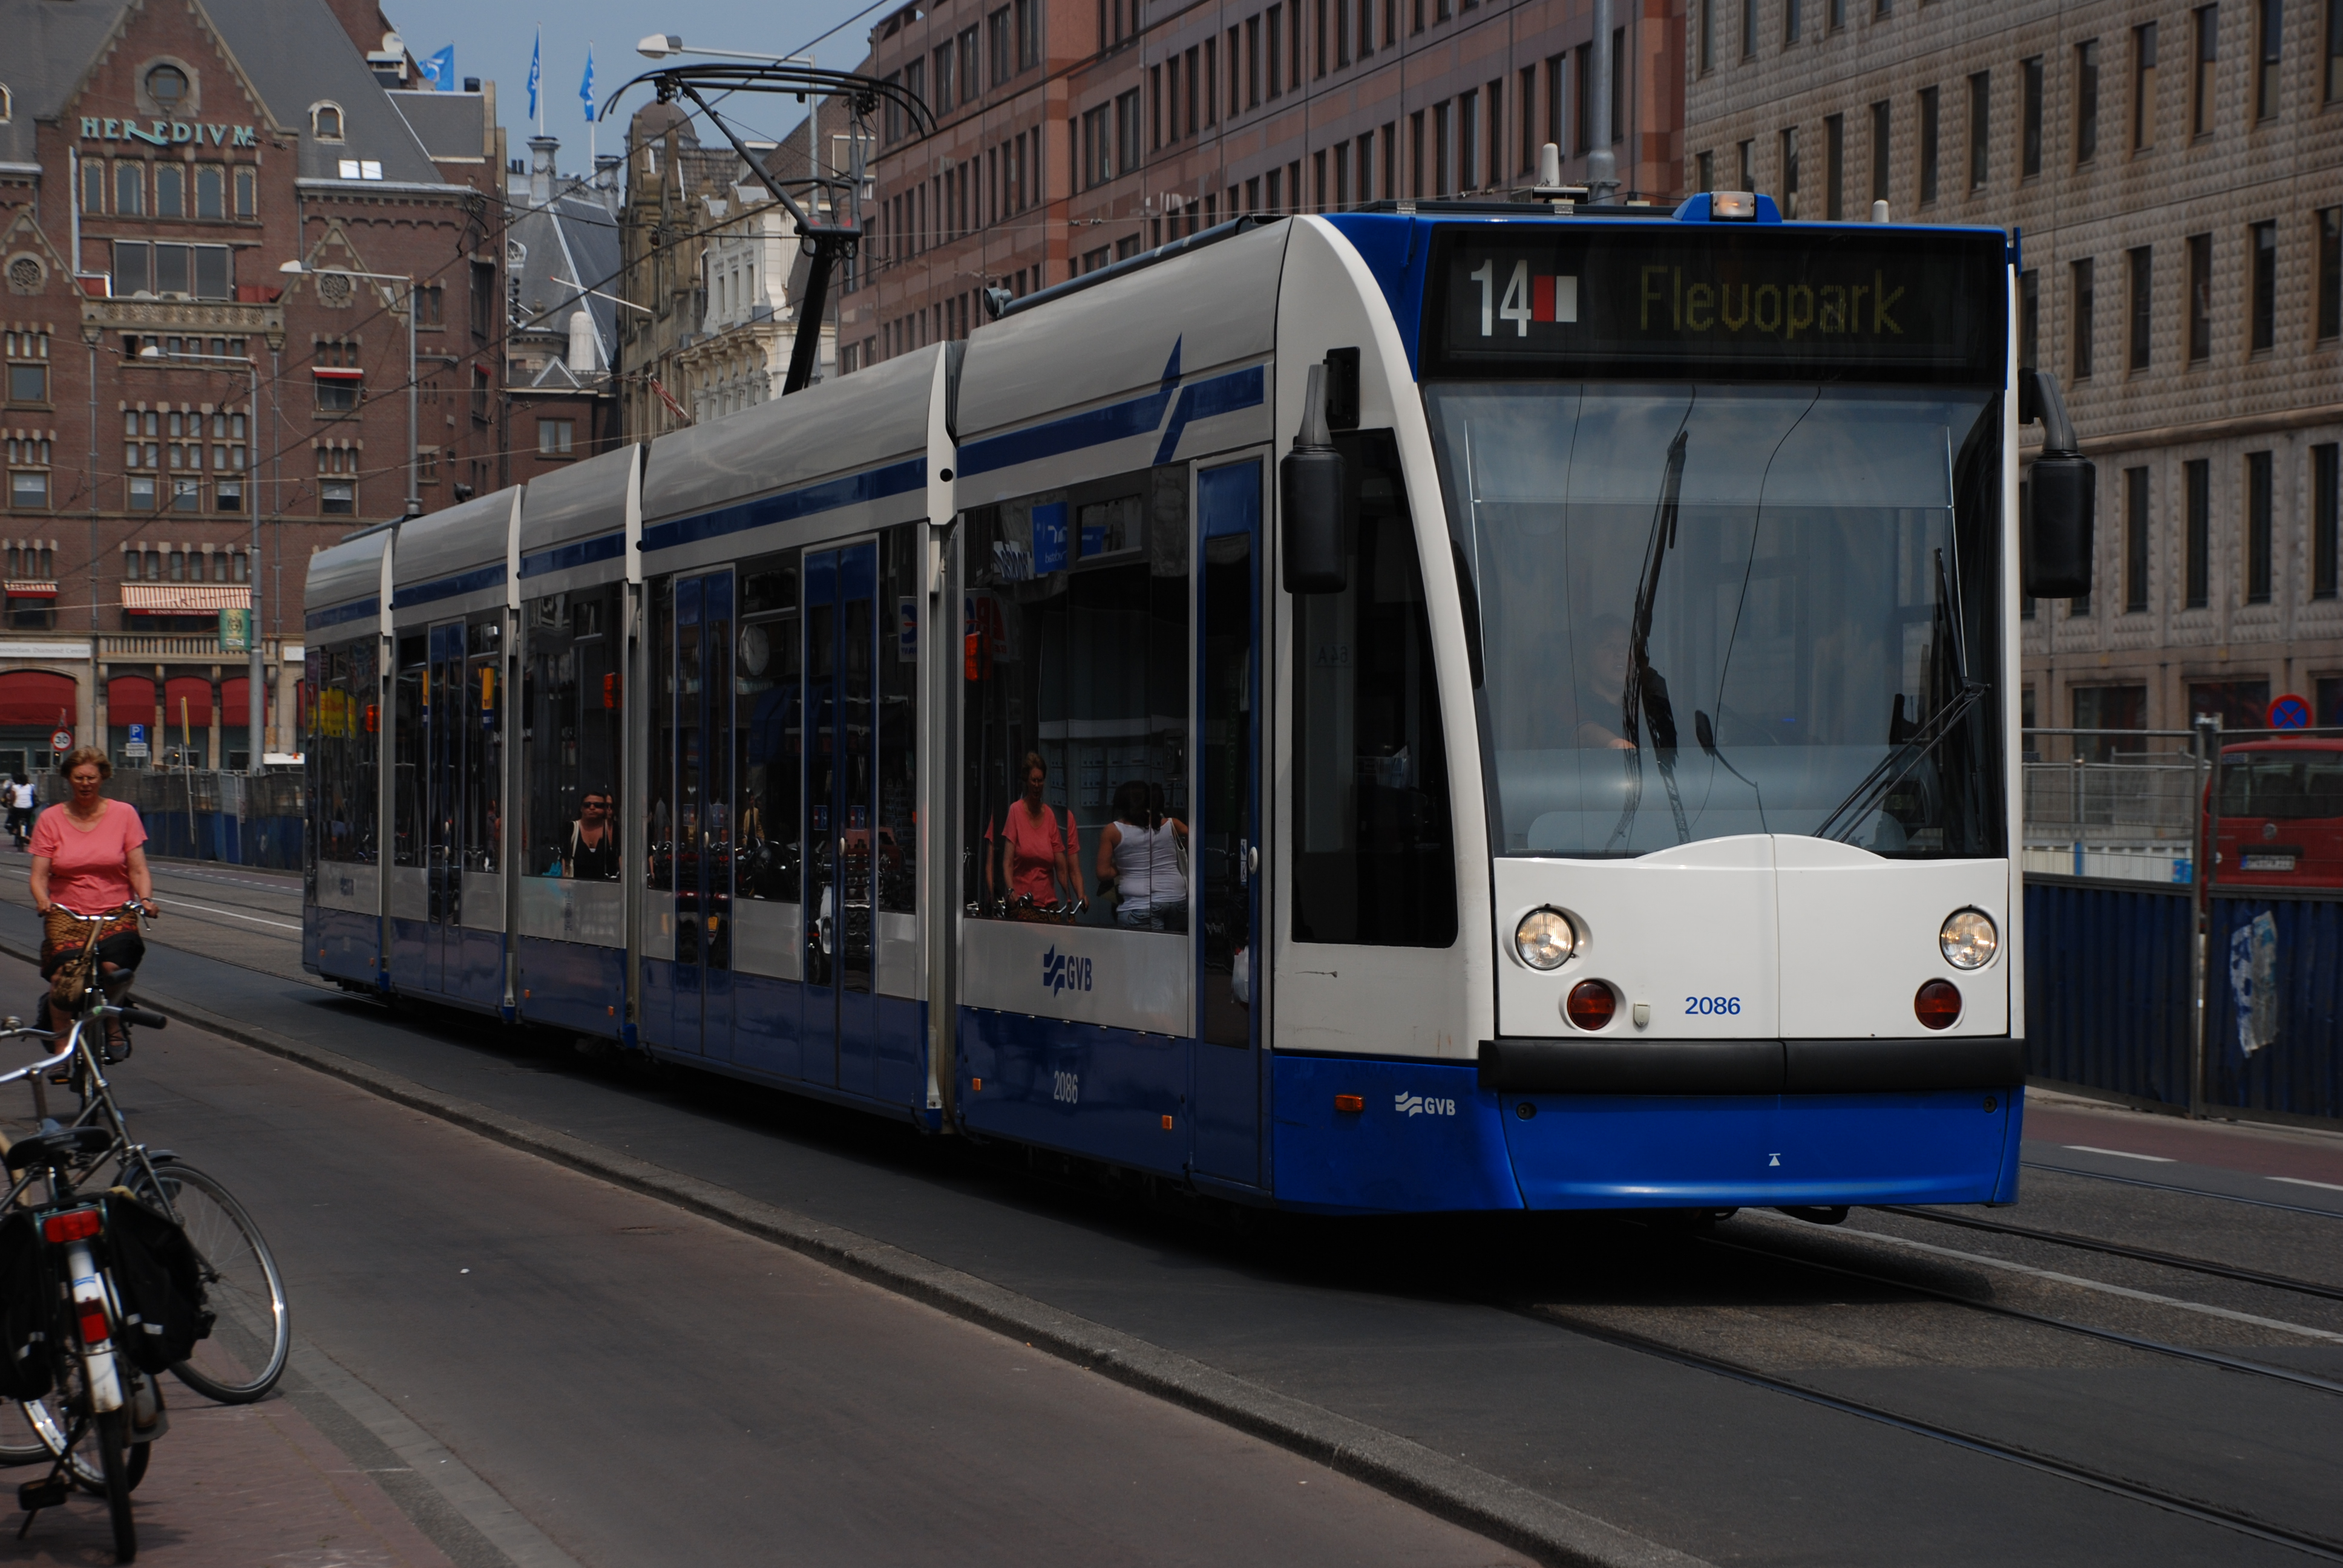 Build Your Own Car >> File:GVB Combino 2086 (Amsterdam tram) on route 14, May 2008.jpg - Wikimedia Commons